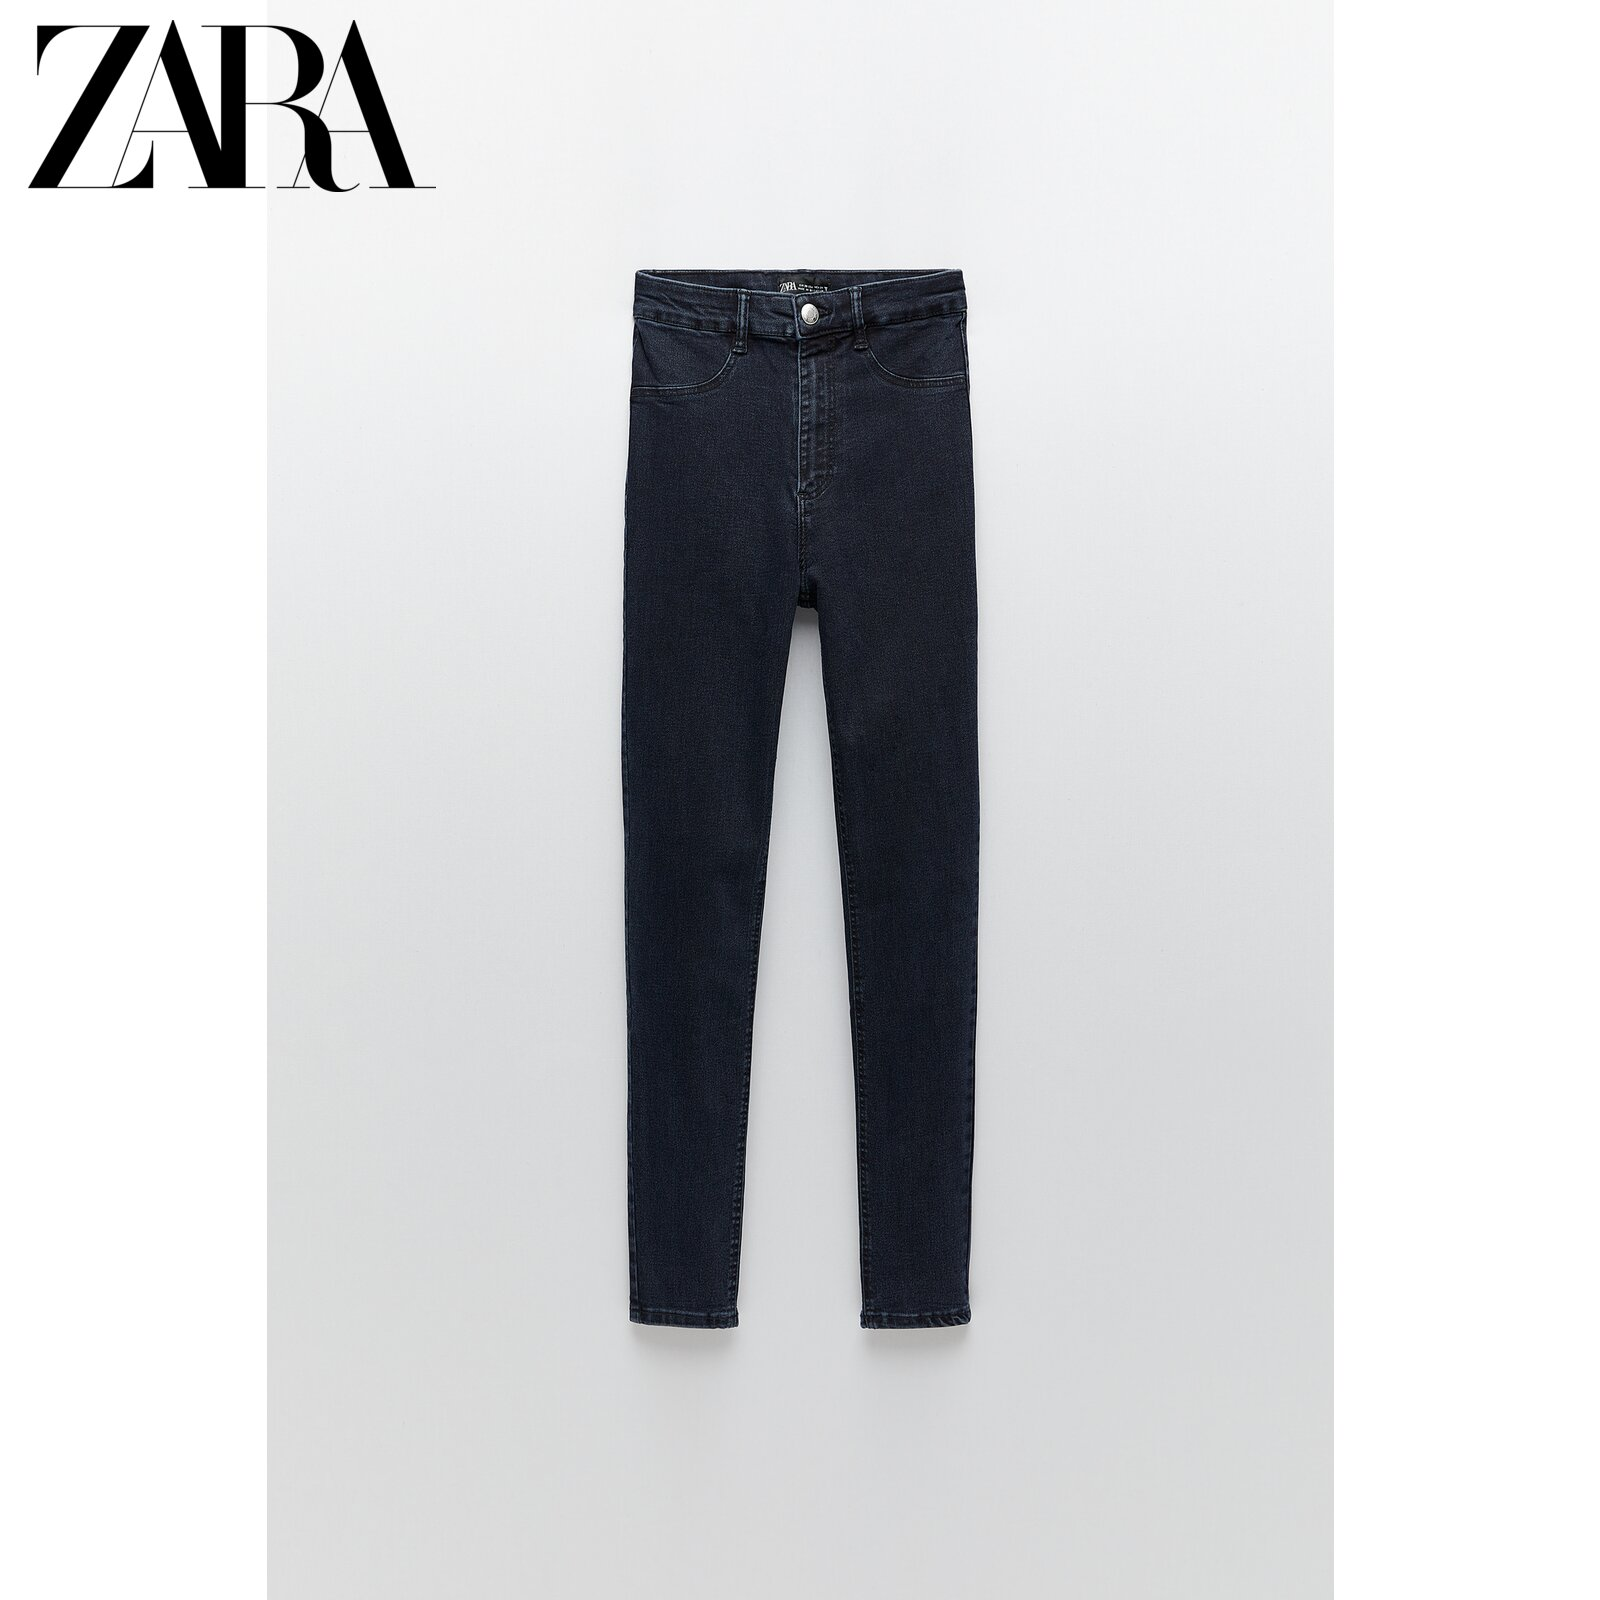 ZARA new TRF women's super stretch high waist skinny jeans 05520203462